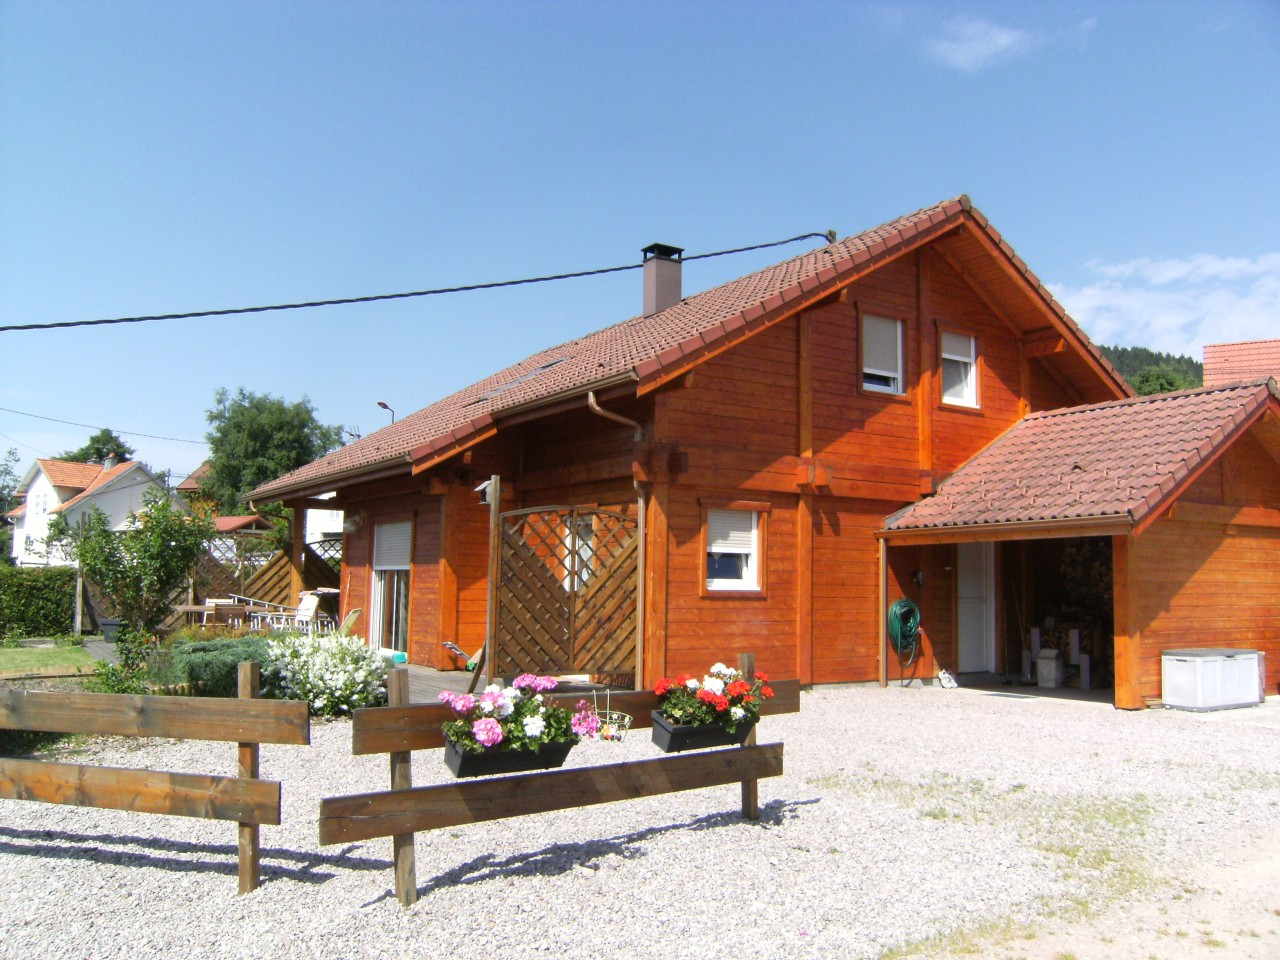 Agence immobili re g rardmer annonce chalets n 2223 for Agence immobiliere gerardmer